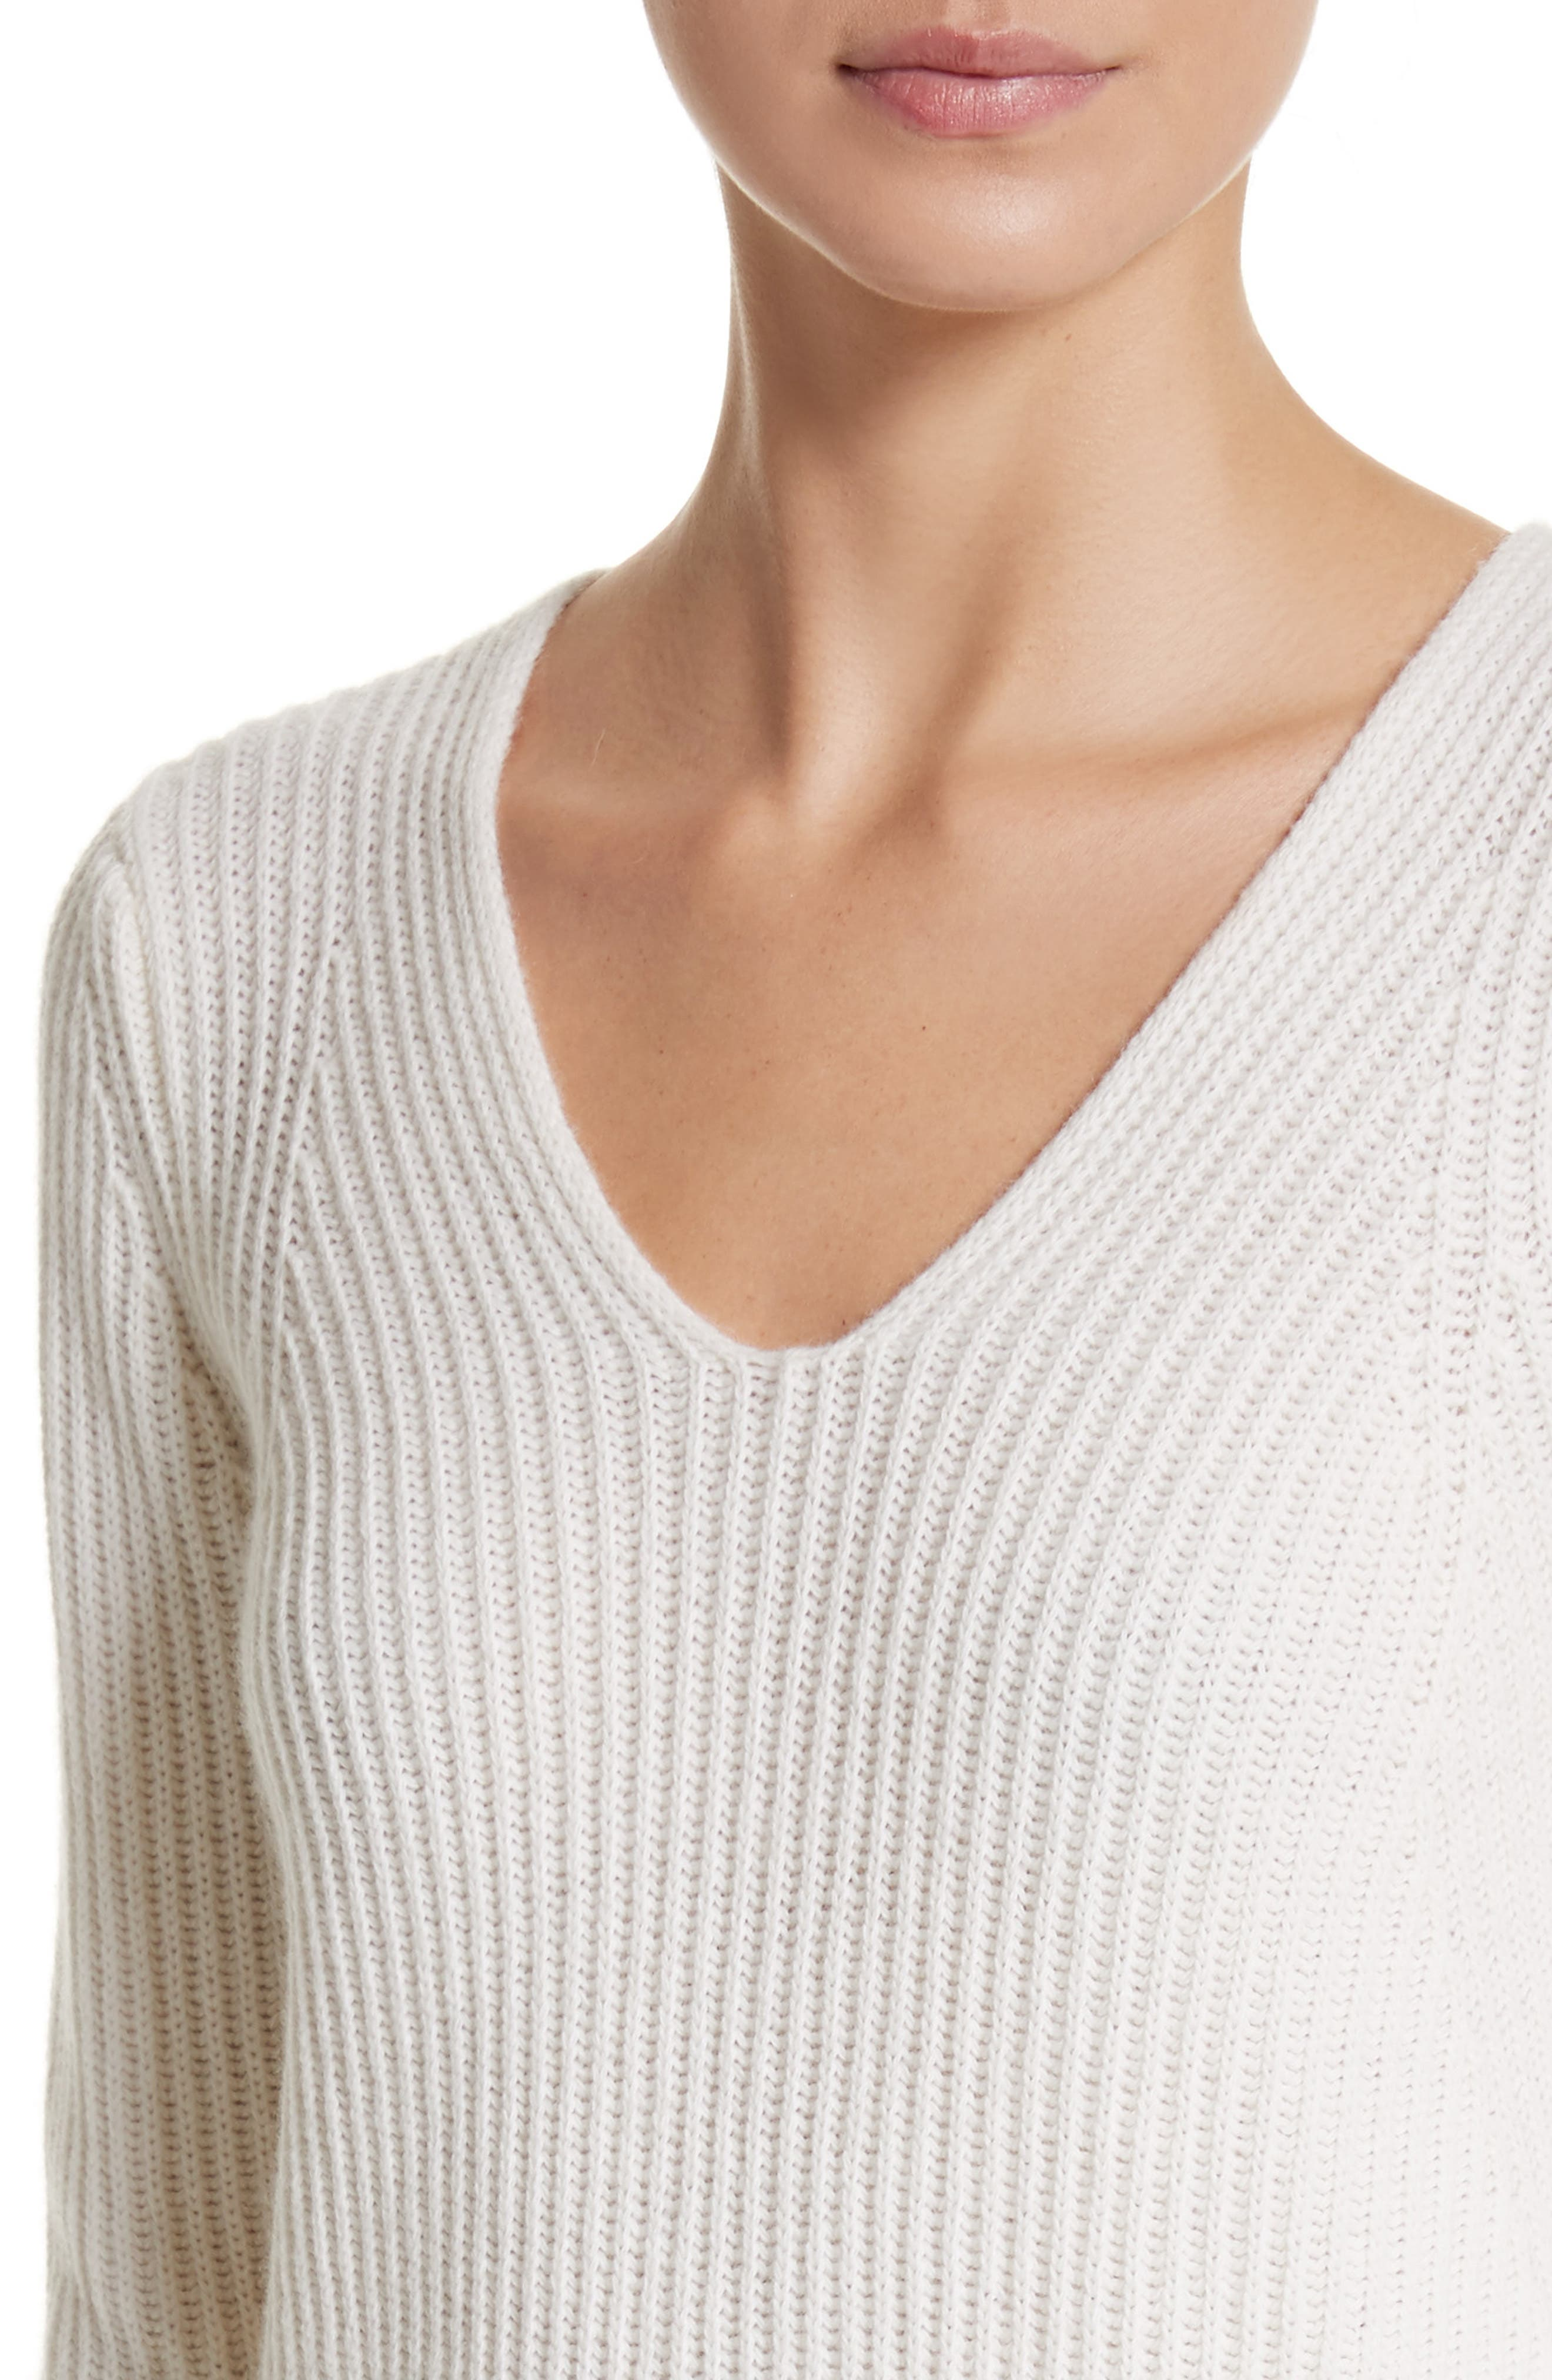 Sax Wool & Cashmere Sweater,                             Alternate thumbnail 4, color,                             900